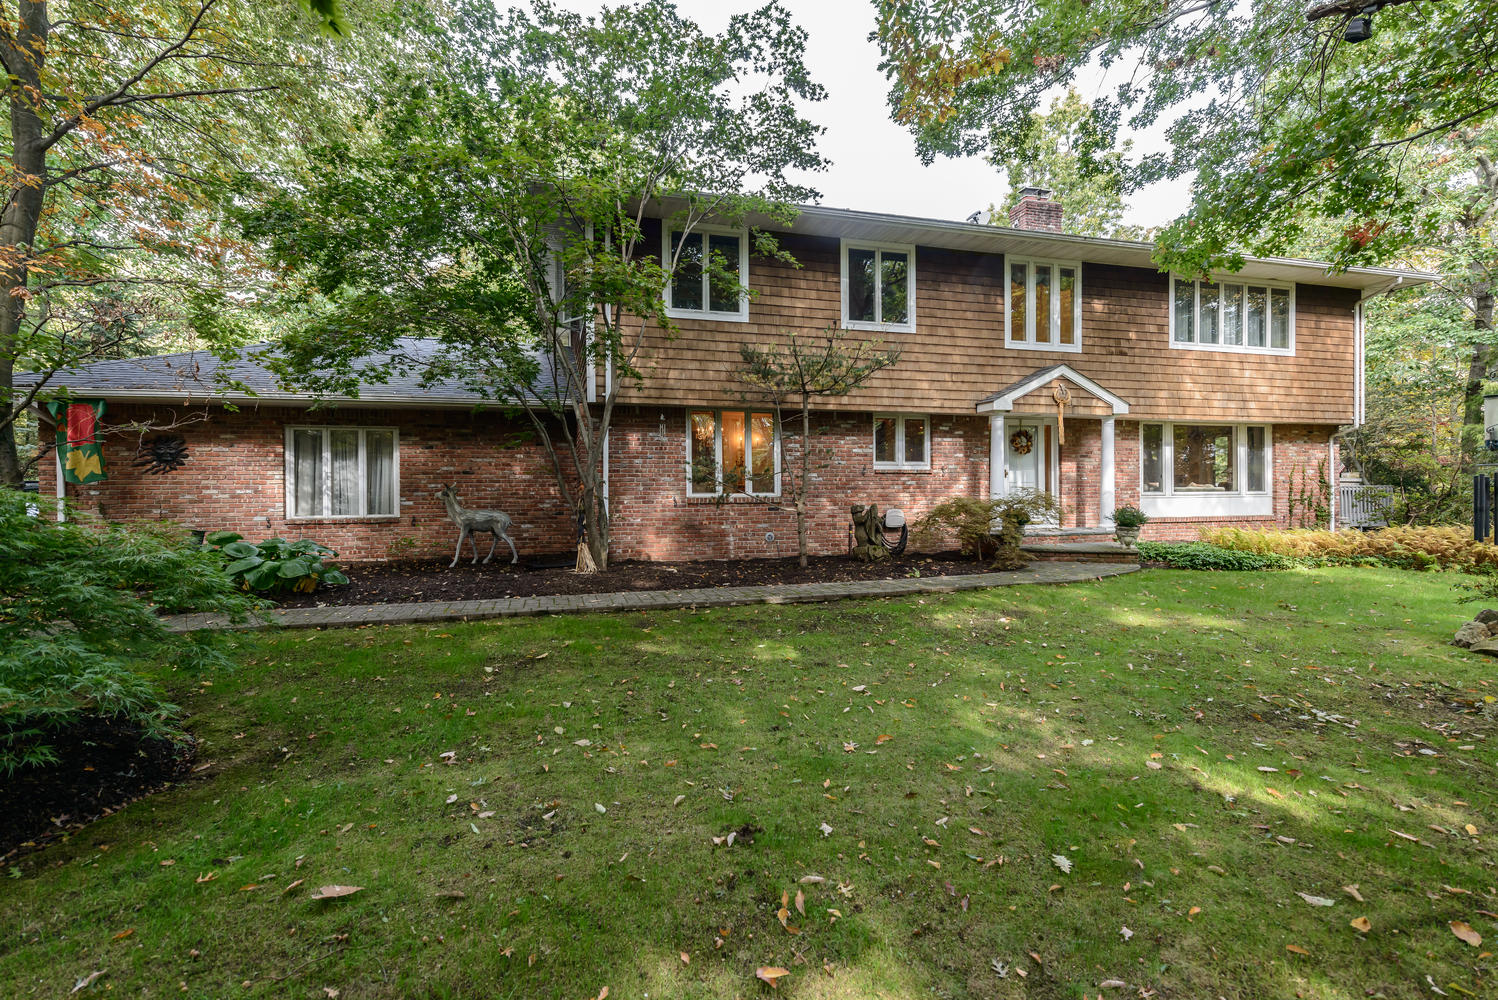 Single Family Home for Sale at Colonial 39 Hilltop Dr Laurel Hollow, New York 11791 United States